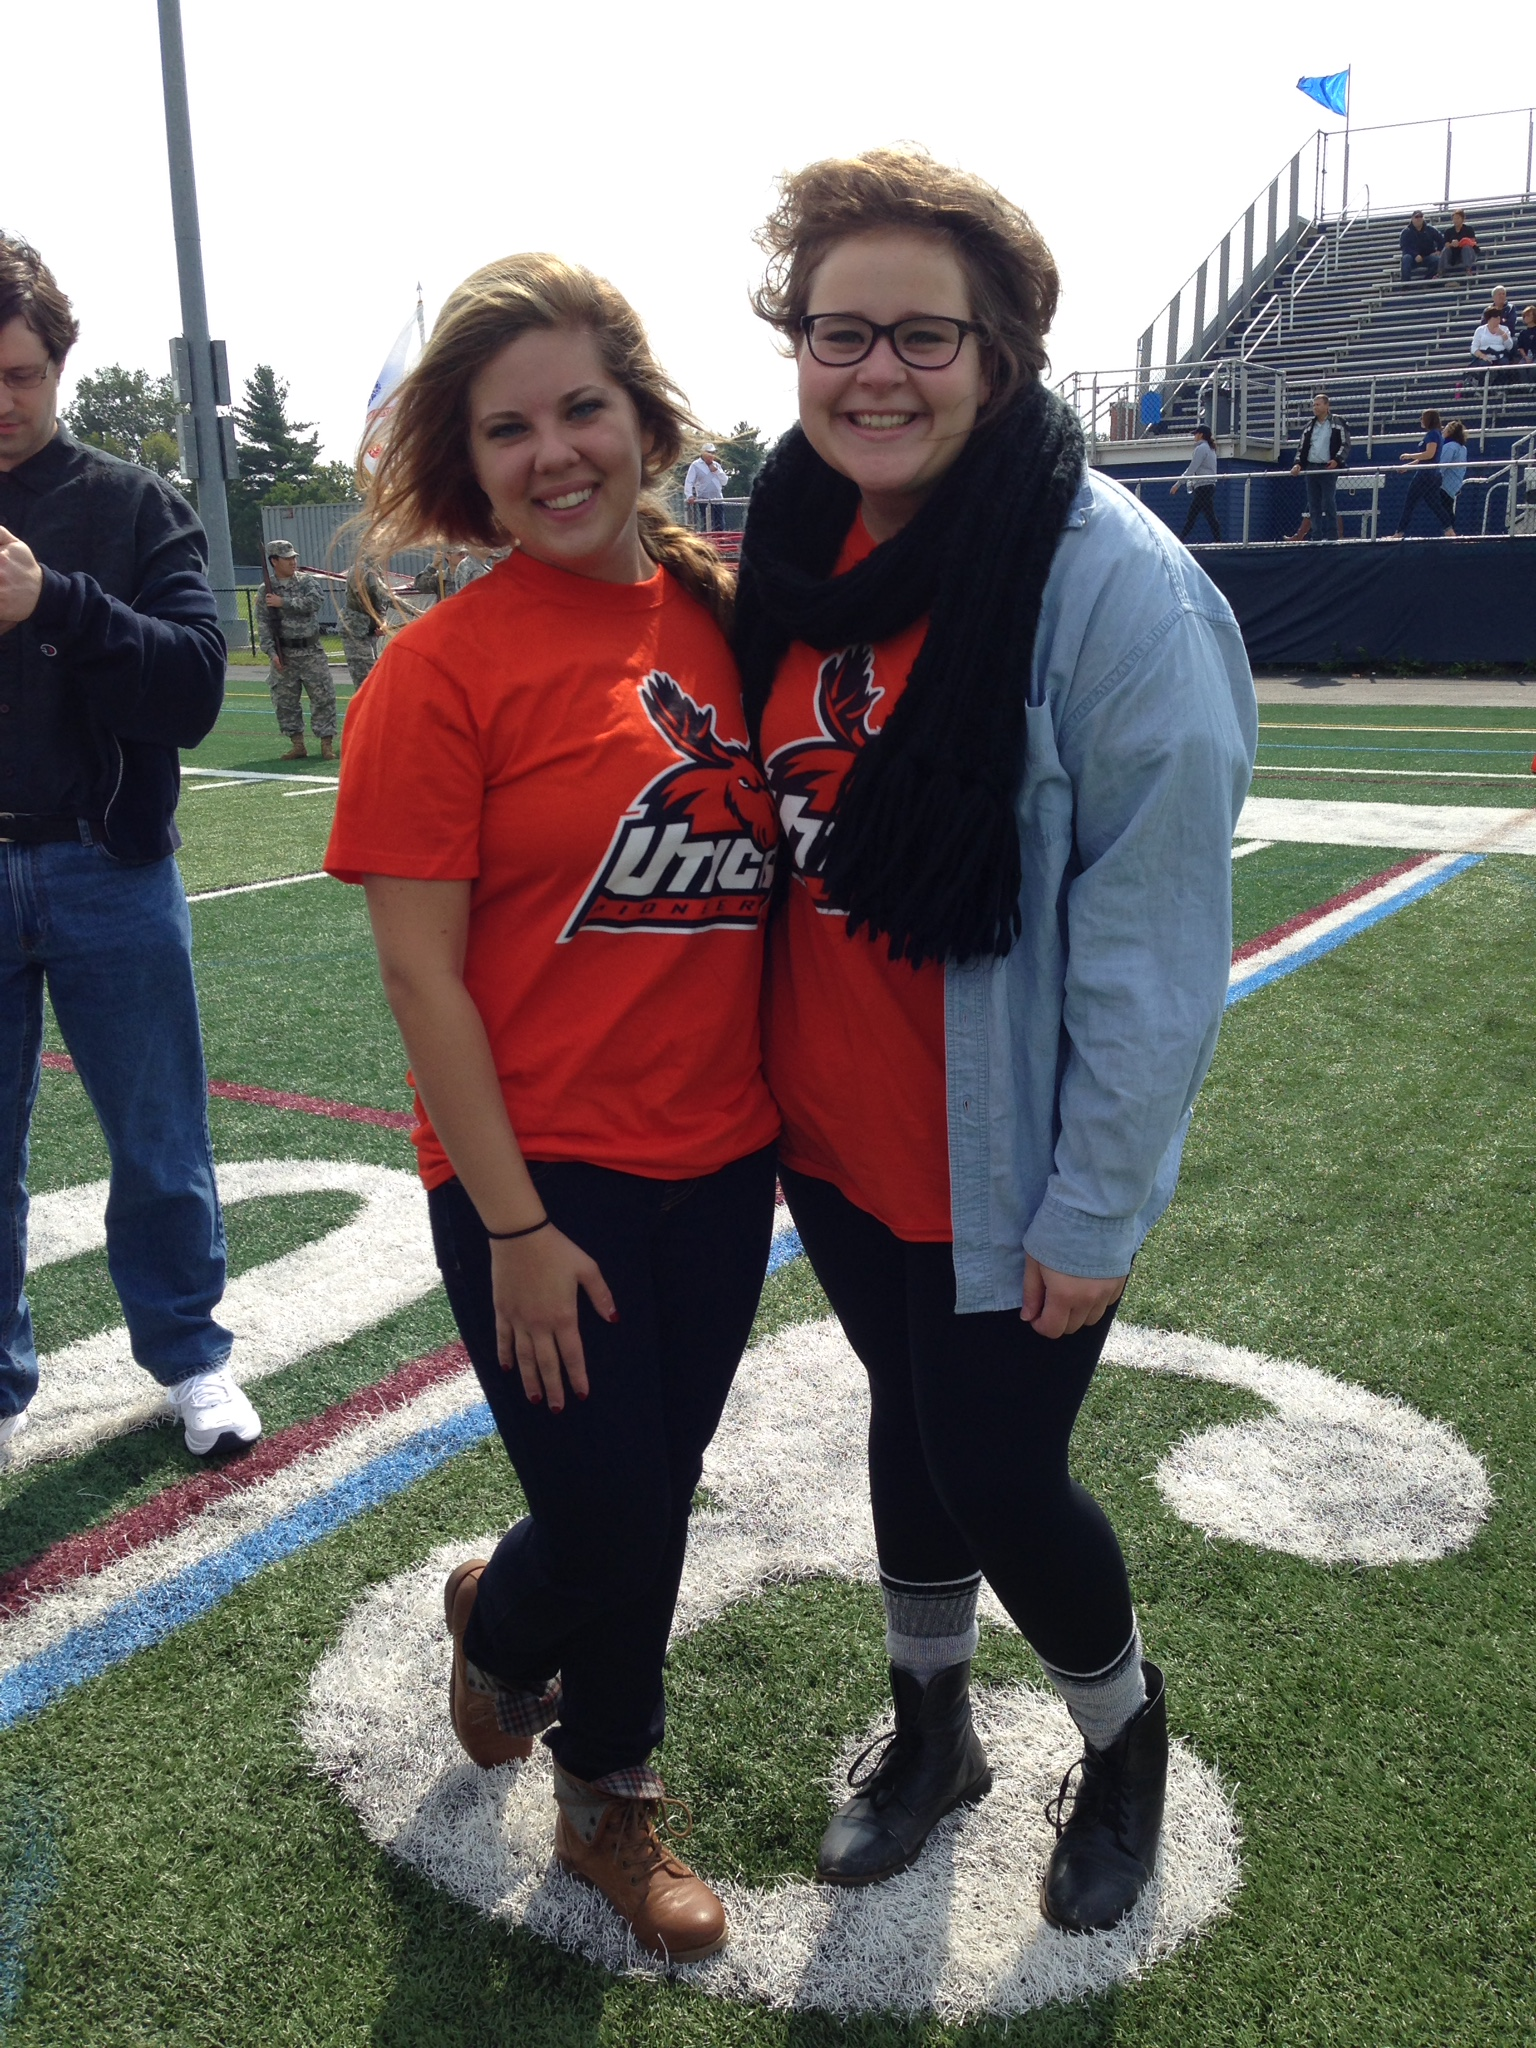 (My friend Elaine and I at the  football game this weekend, reppin' UC swag.)